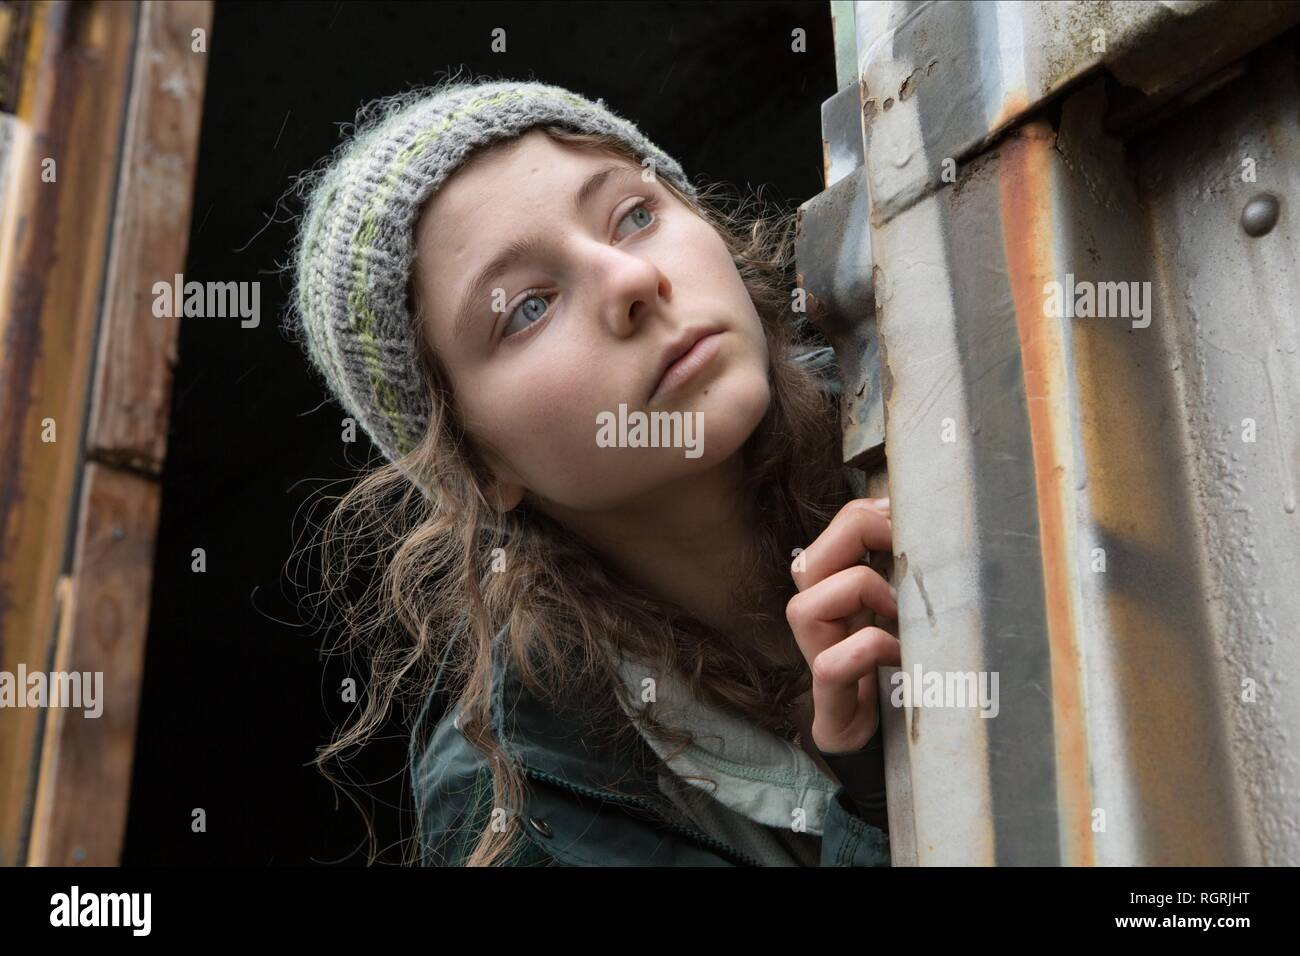 THOMASIN MCKENZIE Leave No Trace (2018) Photo Stock